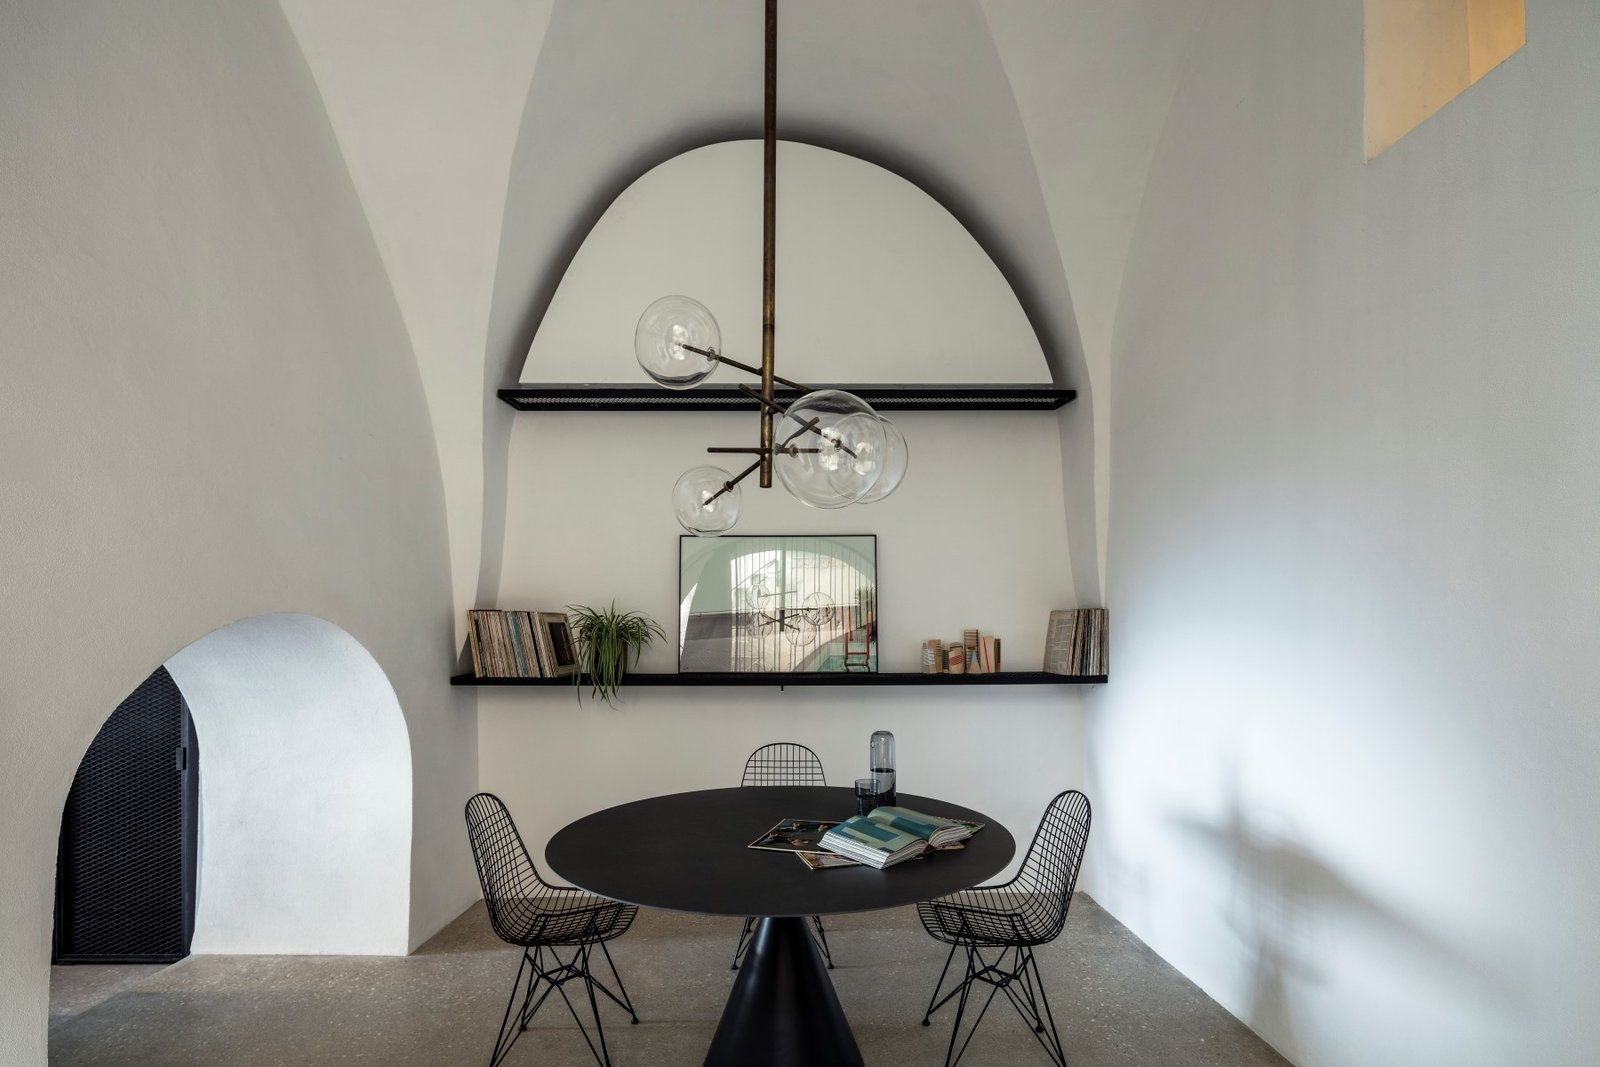 Tagged: Dining Room, Chair, Table, Terrazzo Floor, and Pendant Lighting.  Old Jaffa House by Leibal